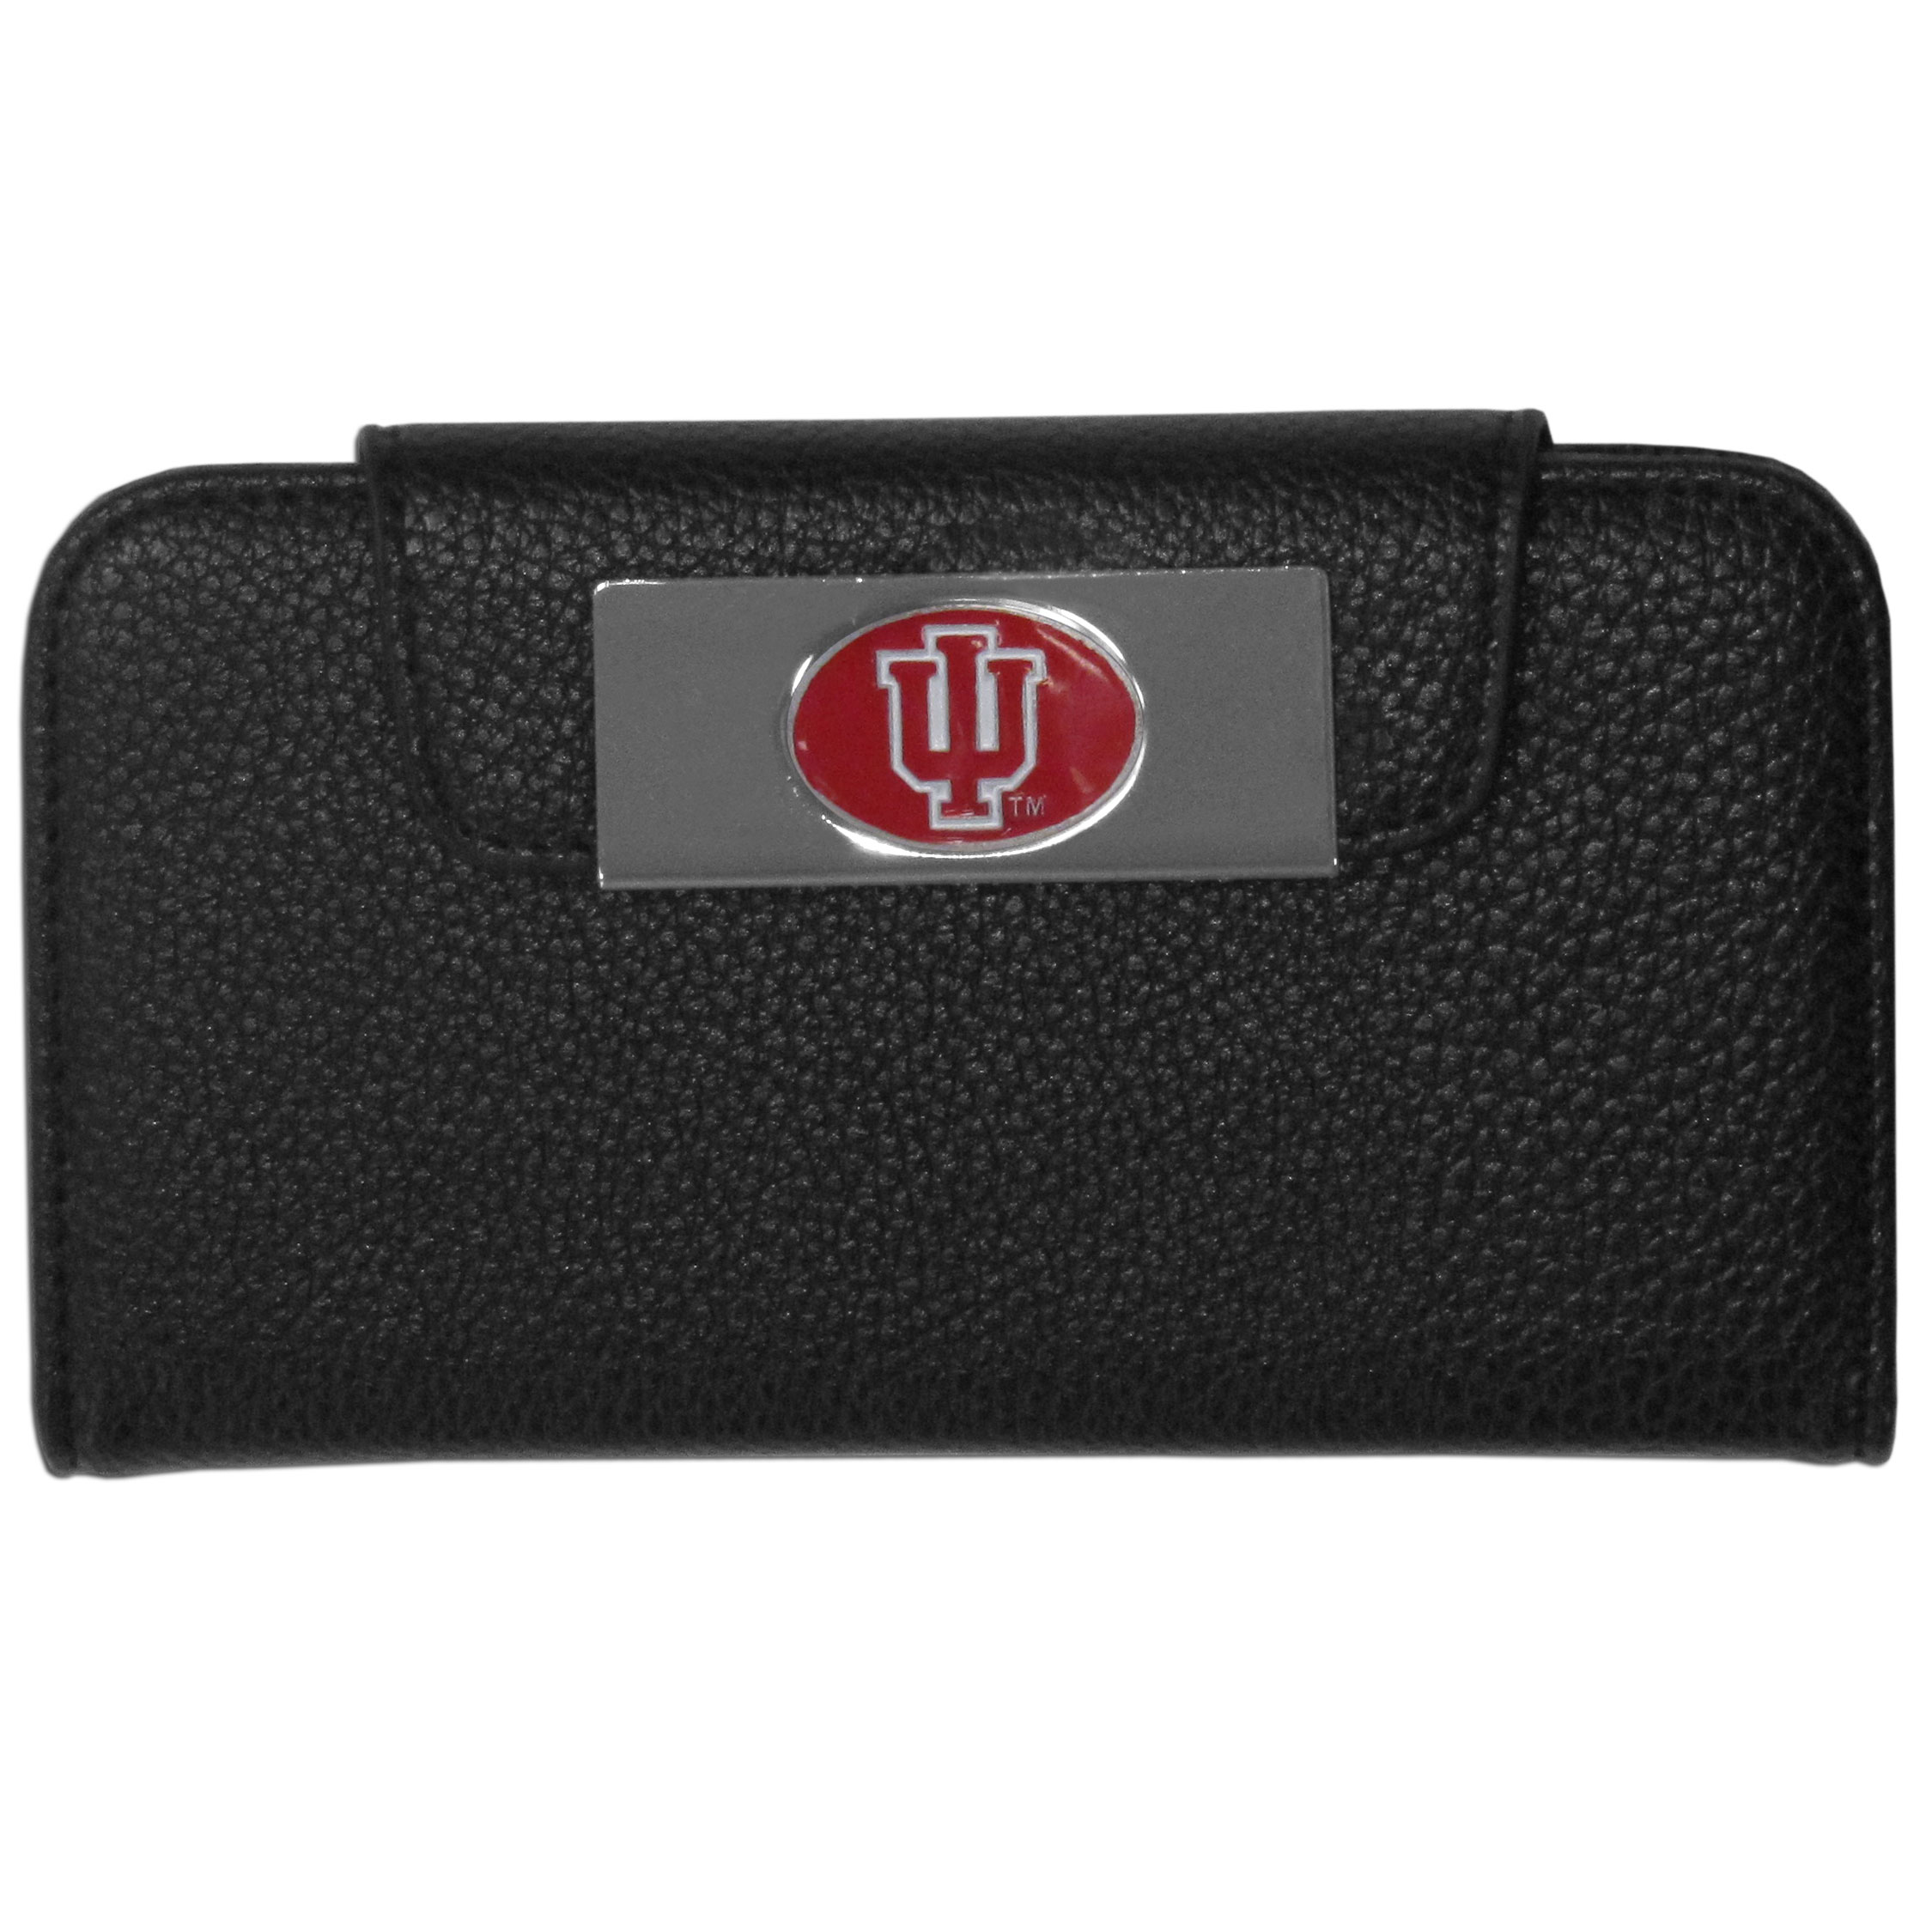 Indiana Hoosiers iPhone 5/5S Wallet Case - This new & wildly popular case is ideal for those who like to travel light! The stylish case has an inner hard shell that securely holds your phone while allowing complete access to the phone's functionality. The flip cover has slots for credit cards, business cards and identification. The magnetic flip cover has a metal Indiana Hoosiers emblem on a high polish chrome backing. Fits the iPhone 5/5S